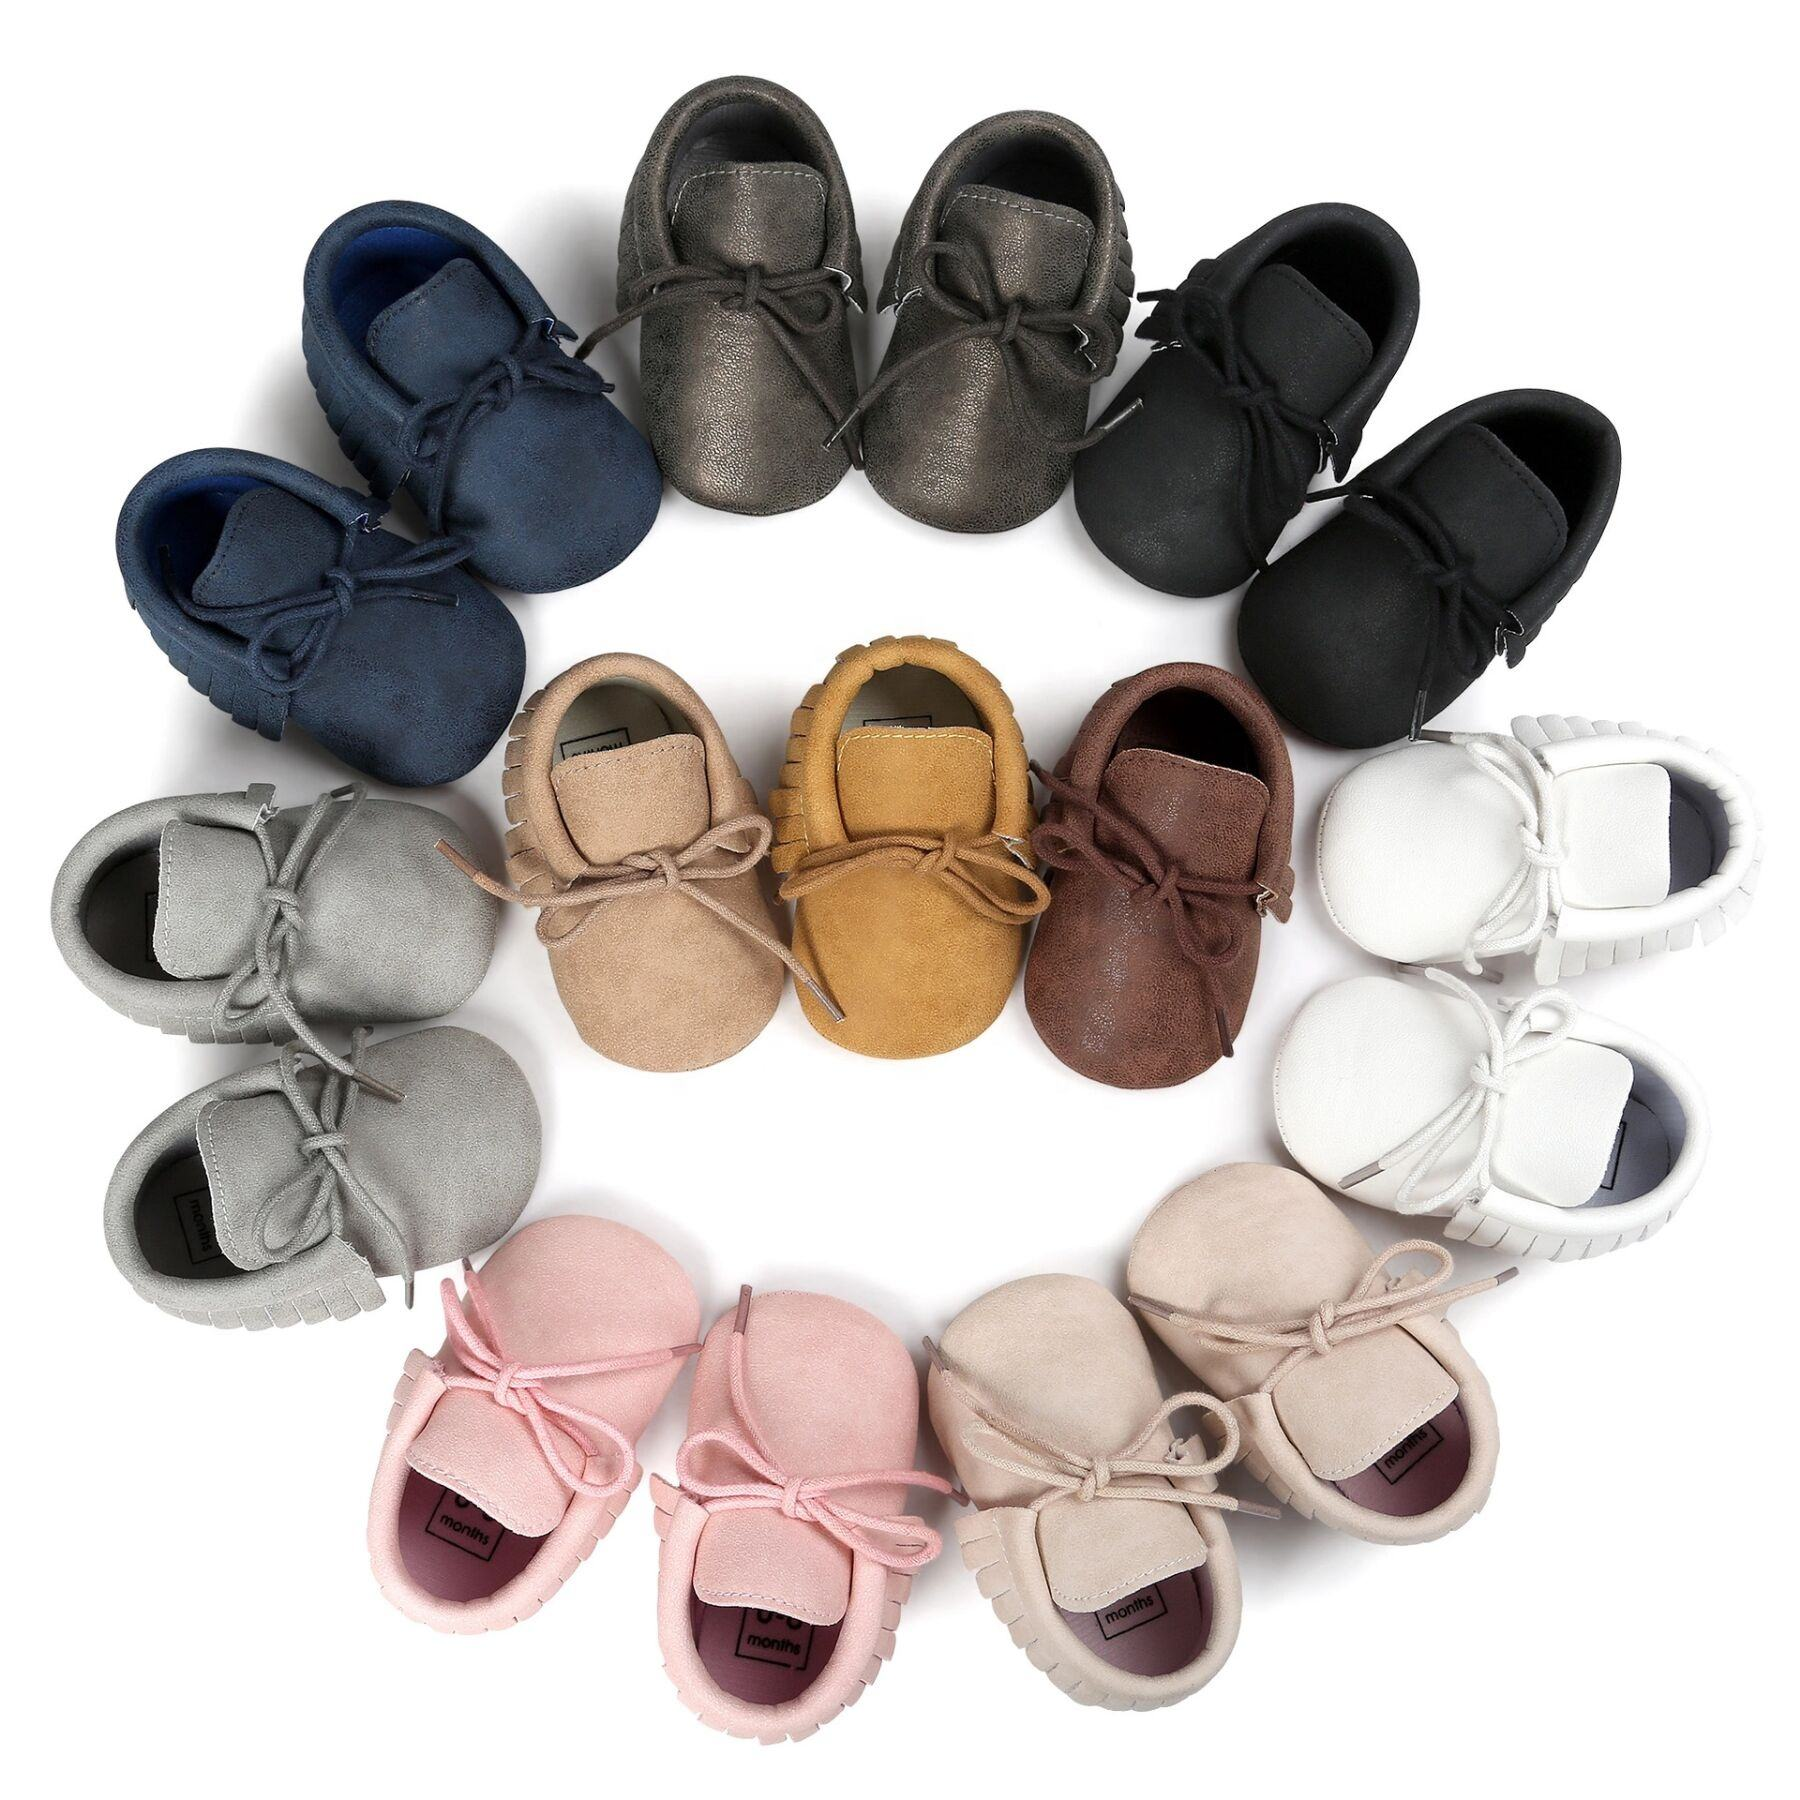 Handmade Vegan PU Infant Toddler Girls Shoes Soft Sole Baby Boy Moccasins